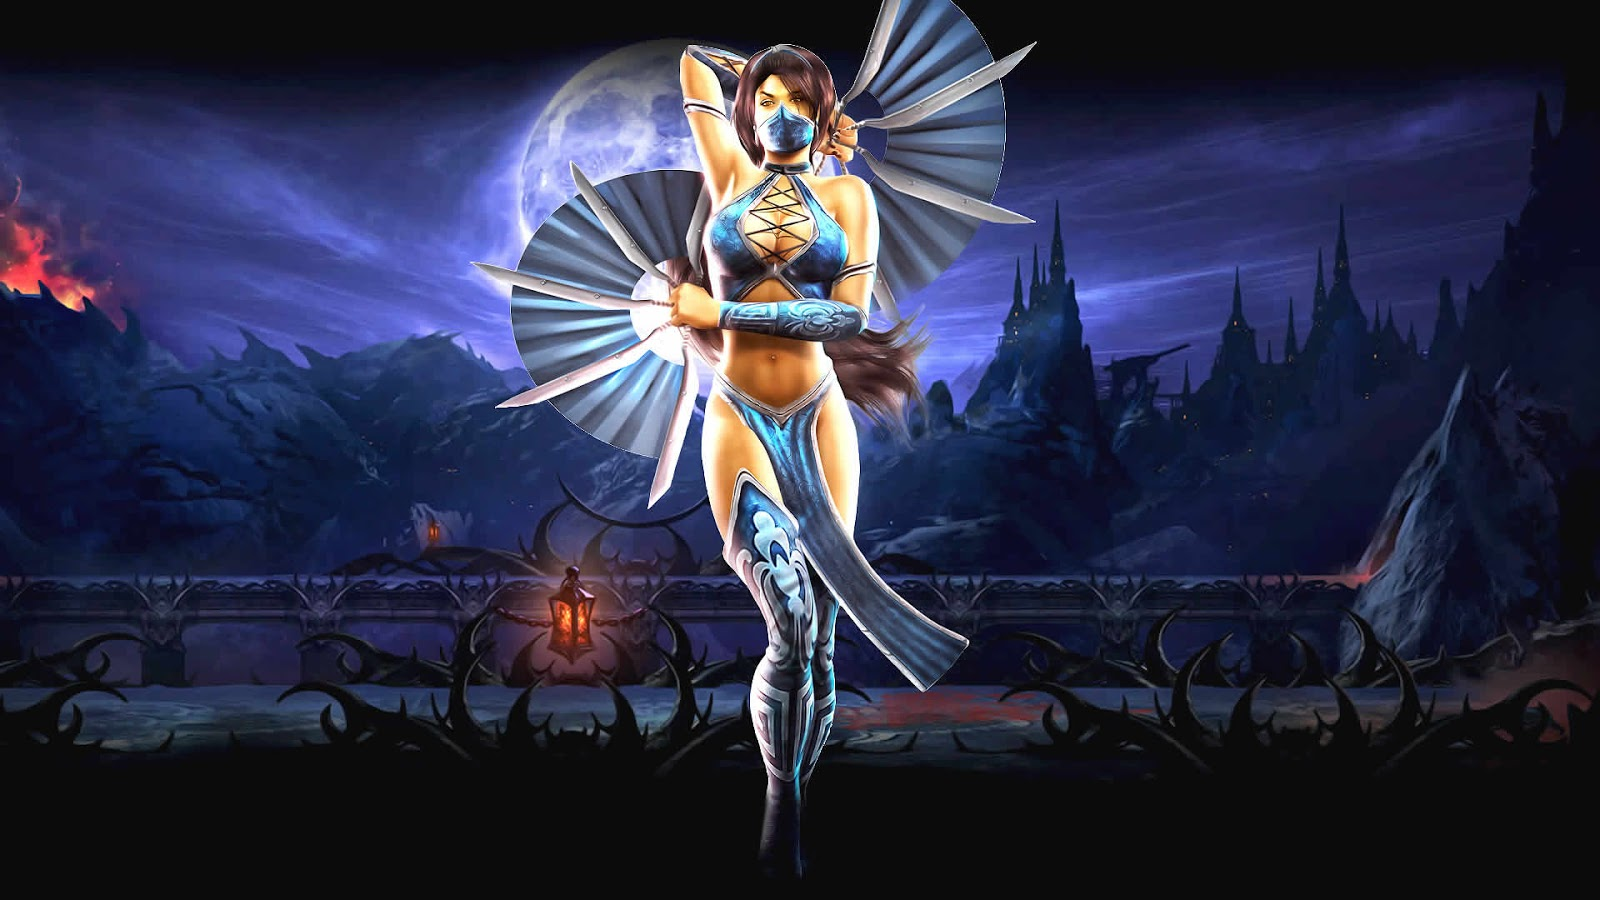 Mortal kombat HD & Widescreen Wallpaper 0.856300121652168